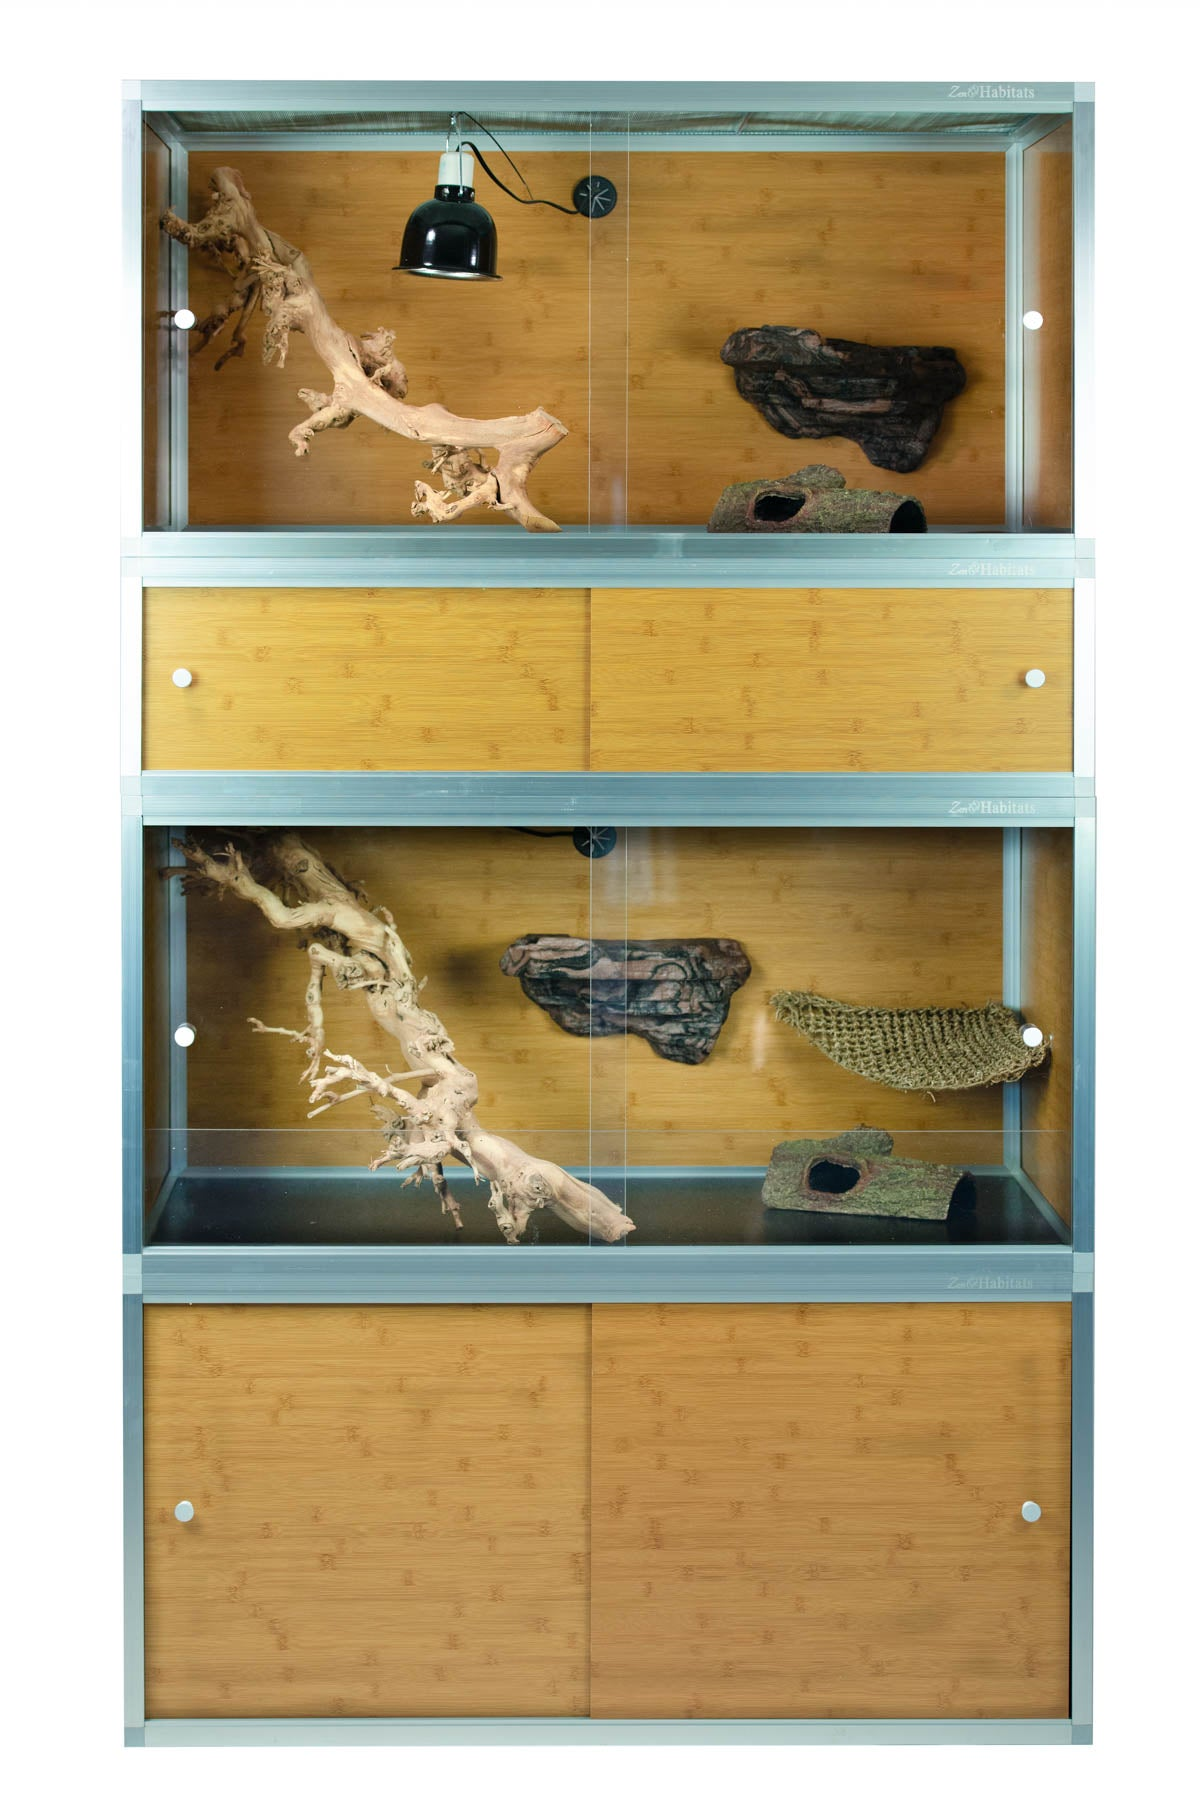 4'x2'x2' Zen Habitats Reptile Enclosures with Wood Panels